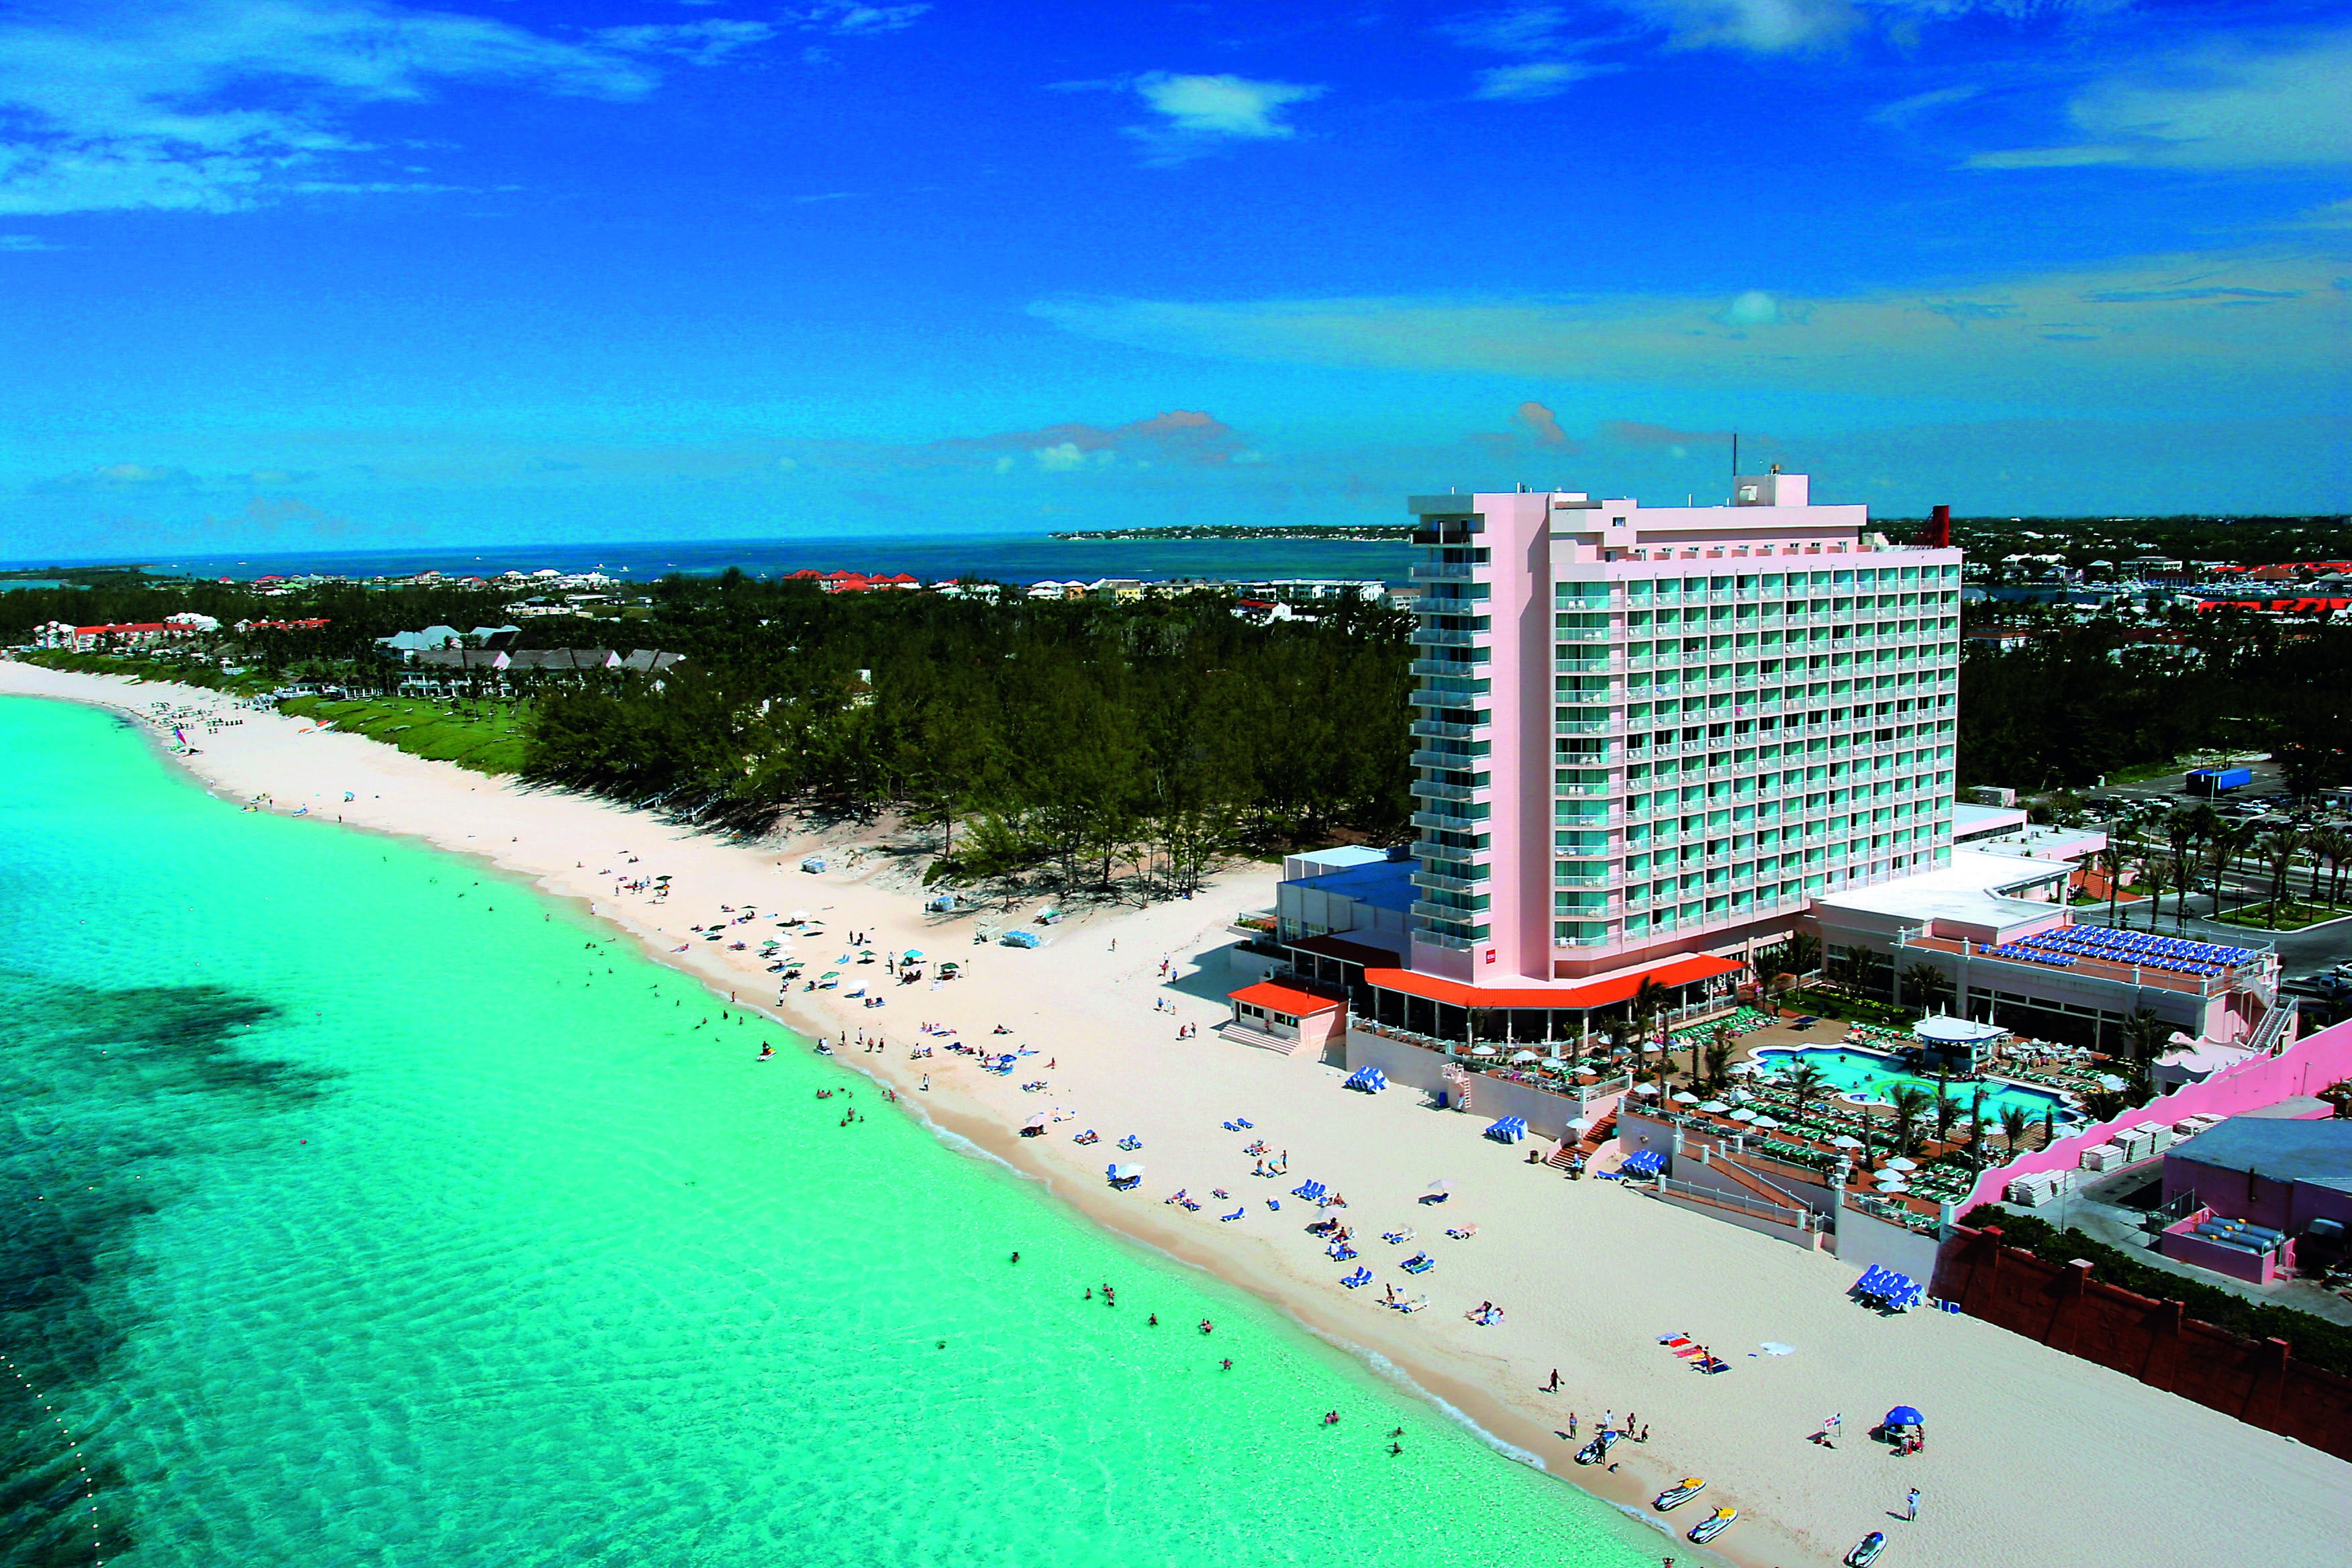 Riu Palace Paradise Island in the Bahamas